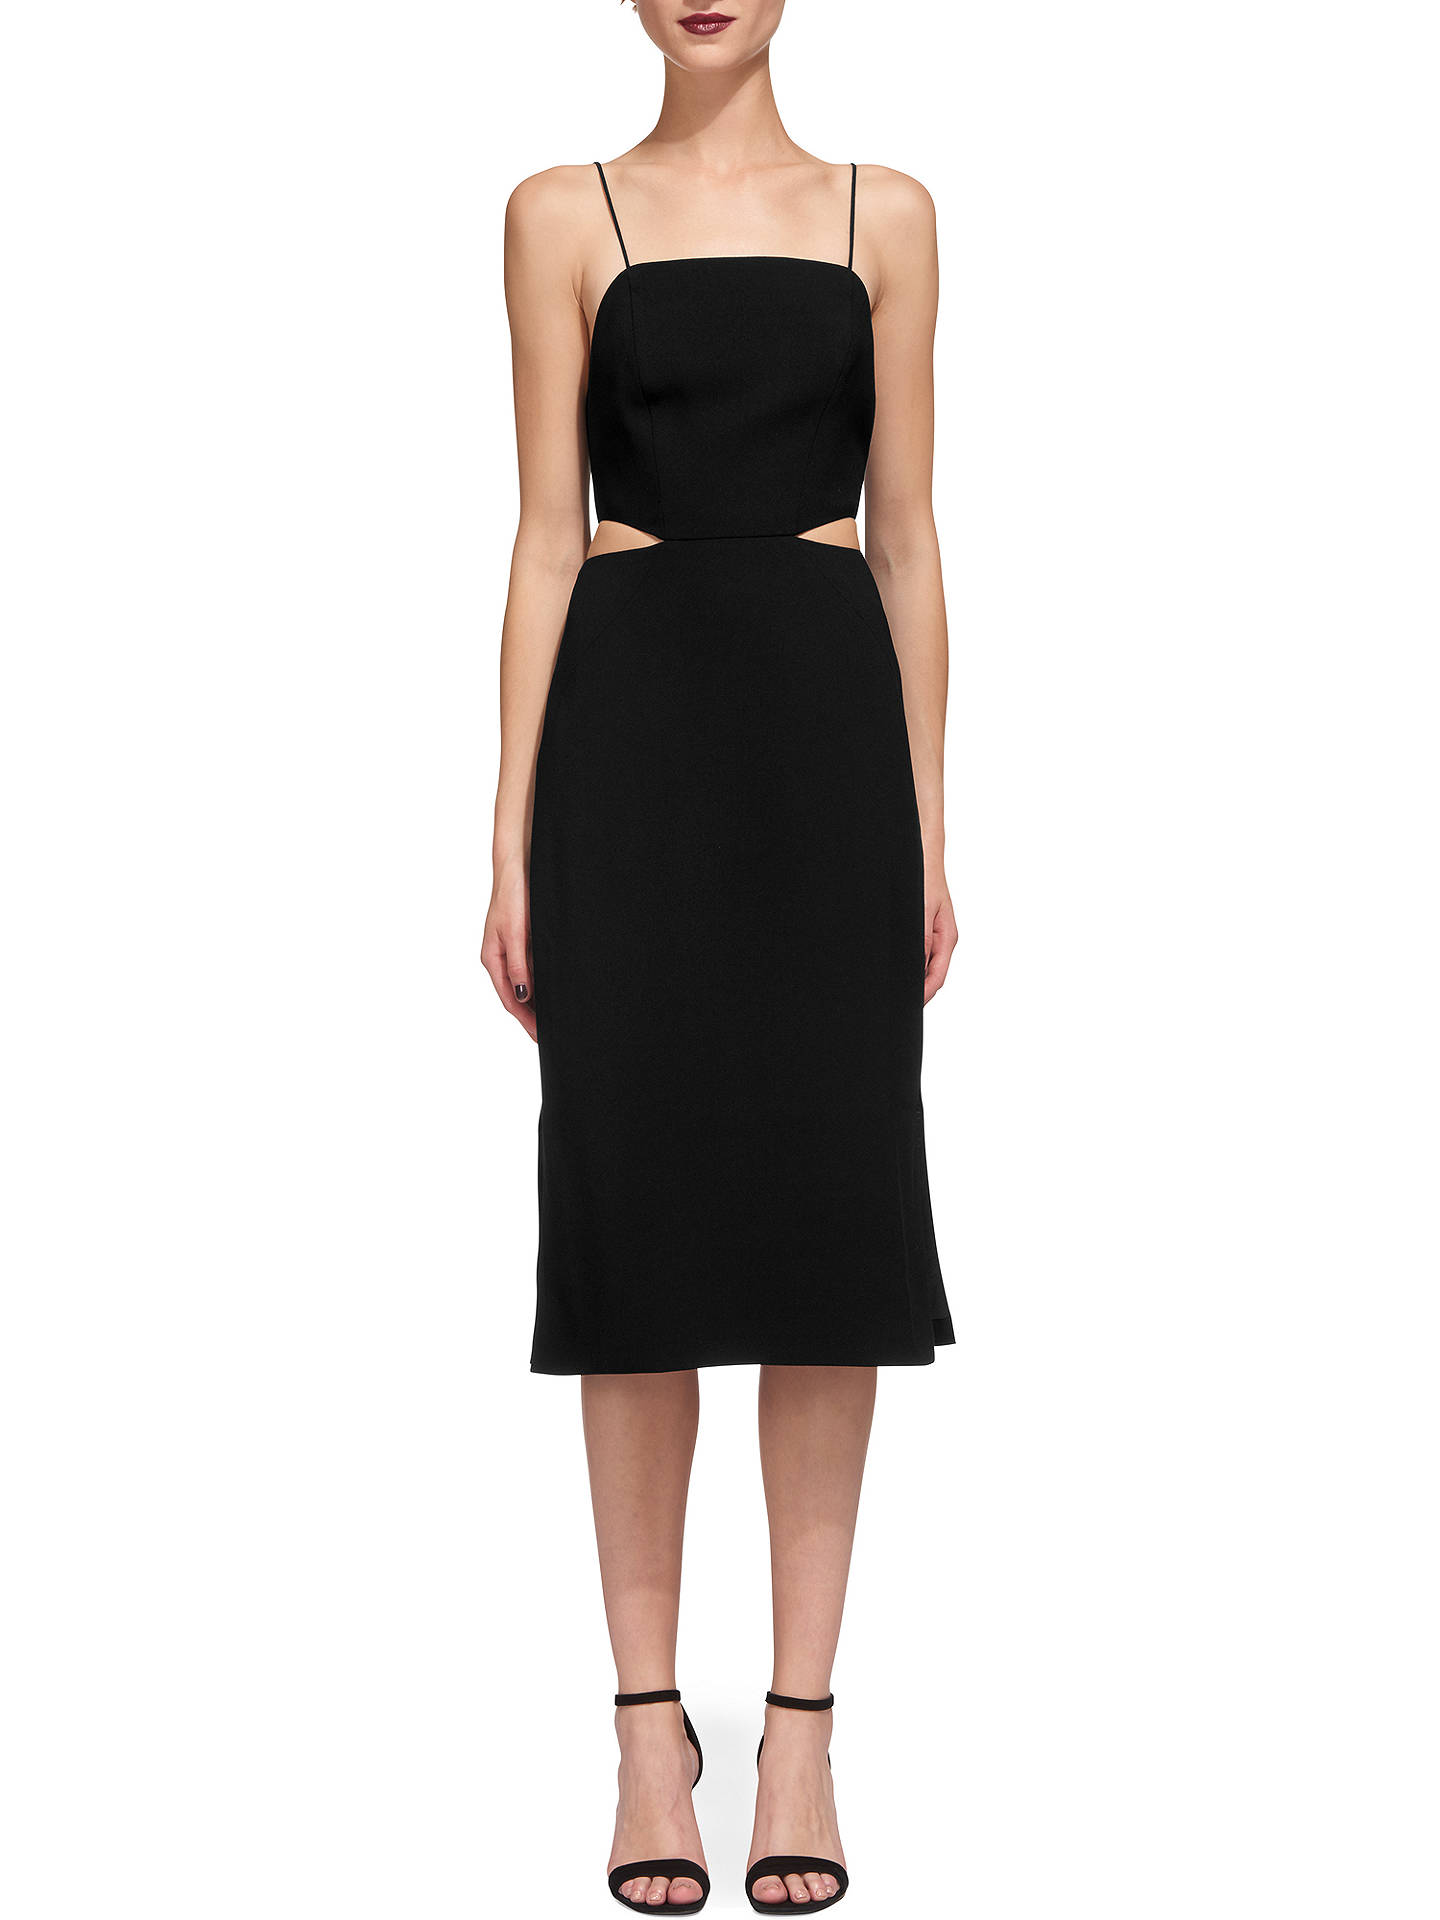 BuyWhistles Rossi Strappy Dress, Black, 14 Online at johnlewis.com